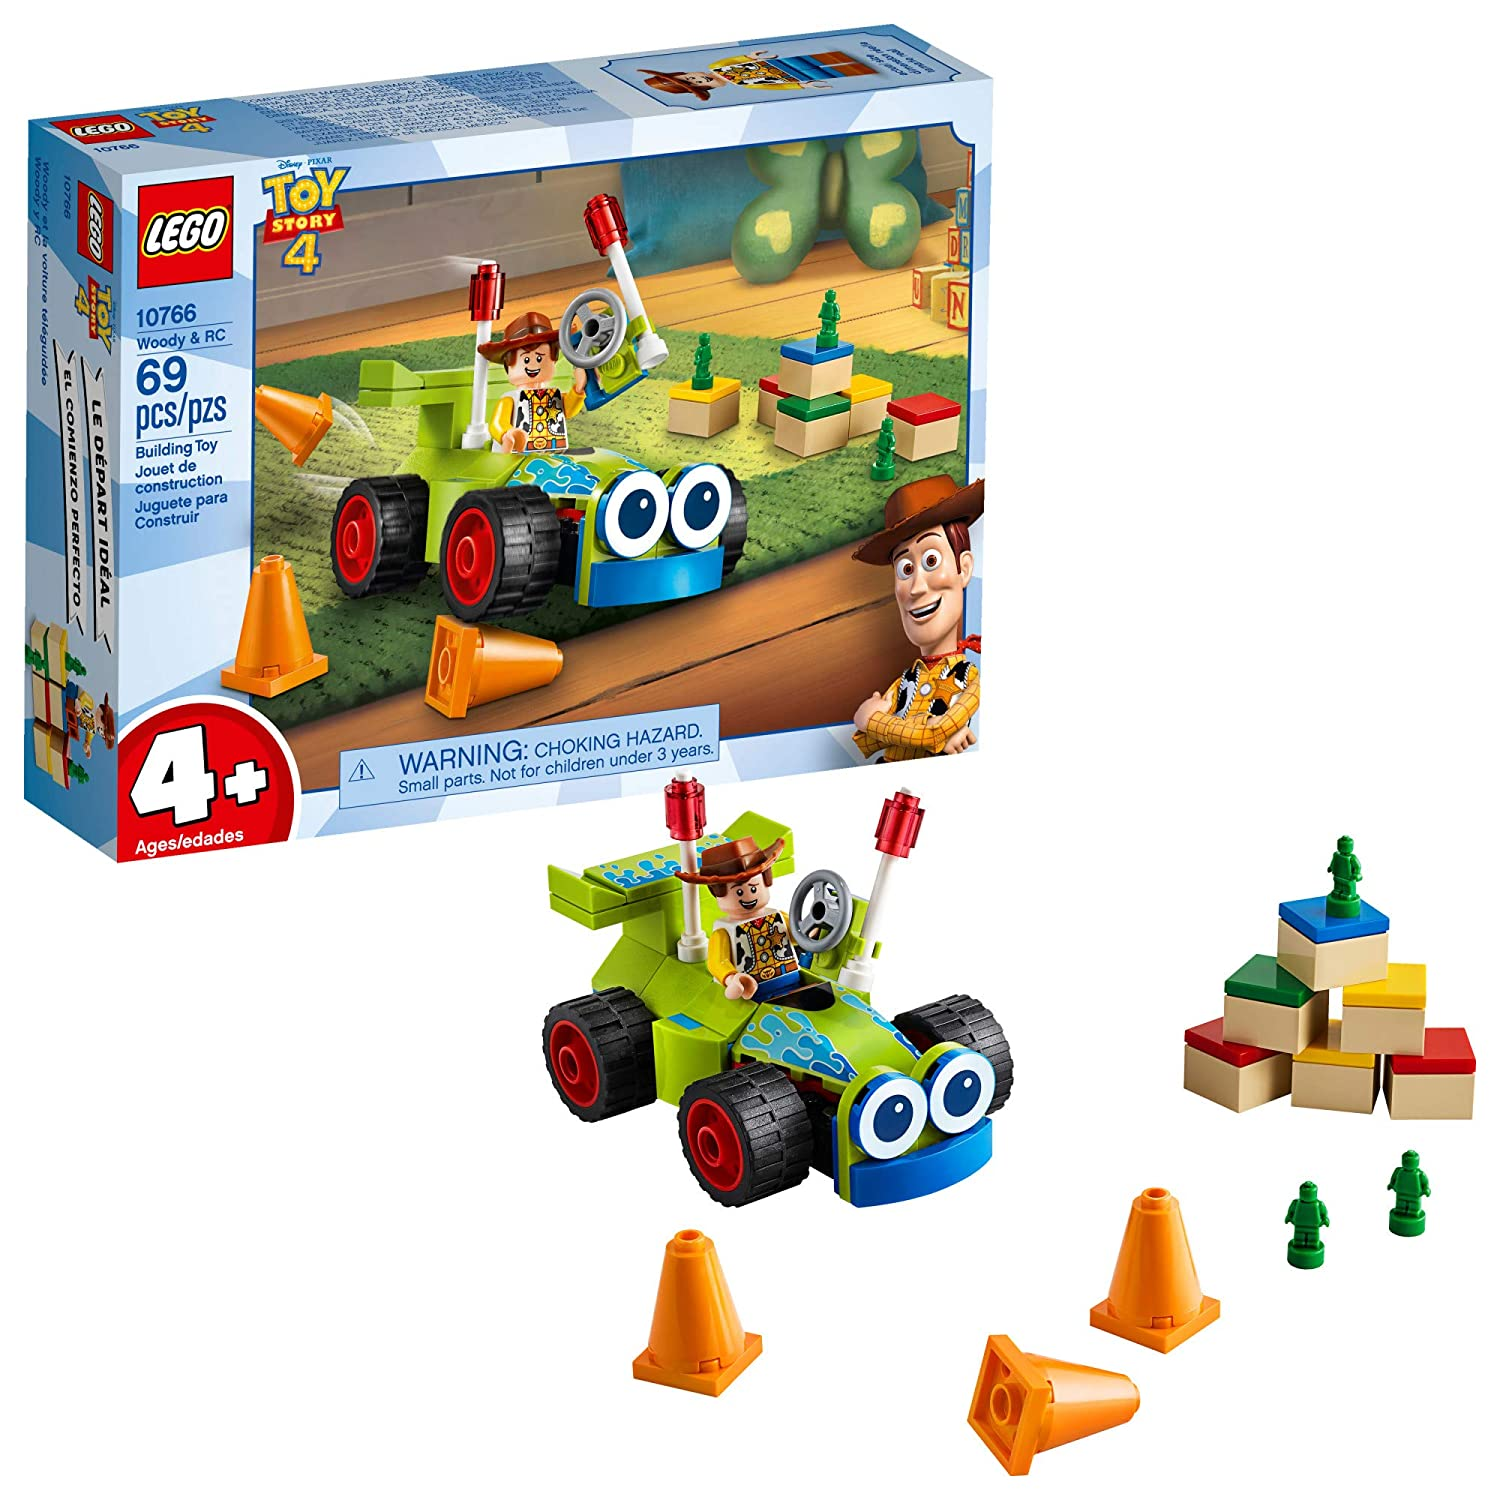 LEGO | Disney Pixar's Toy Story 4 Woody & RC 10766 Building Kit, New 2019 (69 Piece)